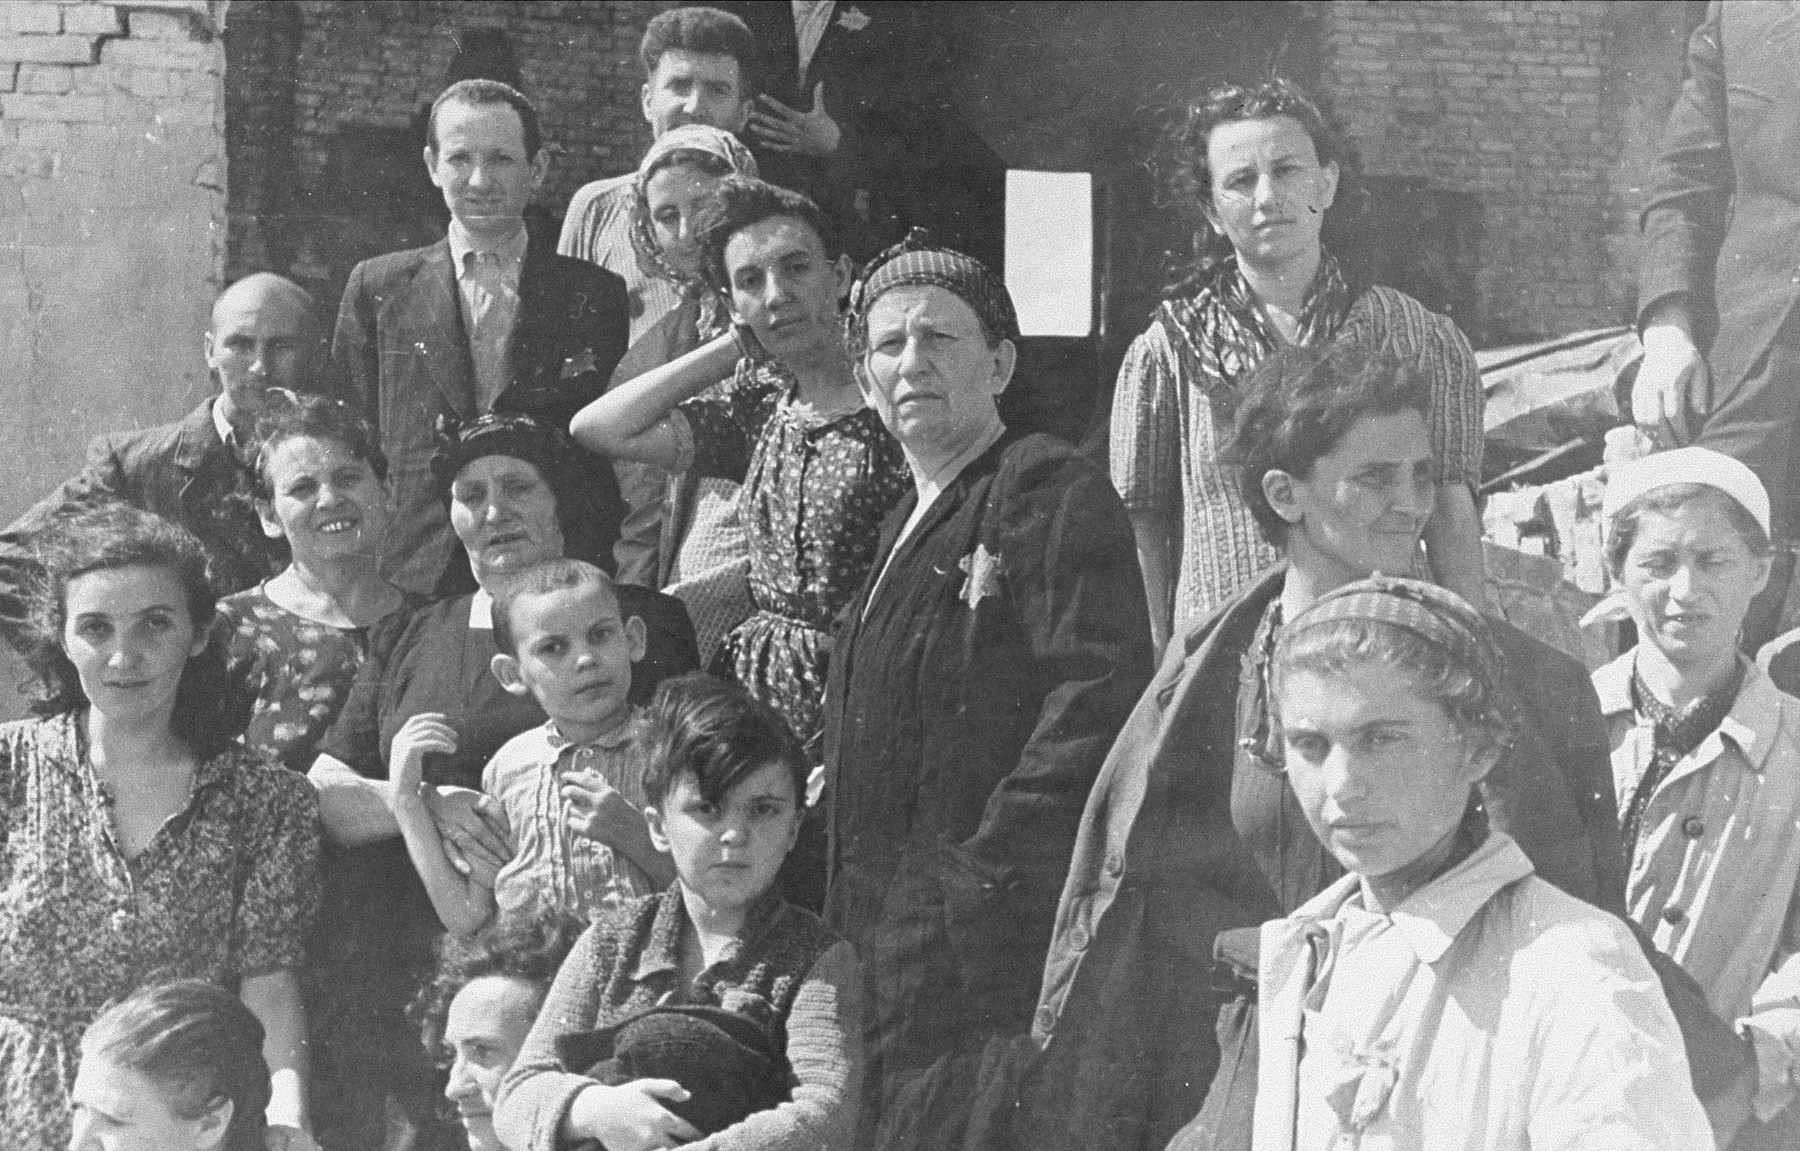 Survivors of a malina, or bunker, in the Kovno ghetto.    This bunker, under the Block C apartment complex was one of the most sophisticated in the ghetto, and one of the only to hold.  Built by the engineers Feivel Goldschmidt and Indursky, it included its own ventilation system.  Thirty four people hid in it for a total iof 38 days.    Standing on the left, third from the top is Rabbi Ephraim Oshry, behind him is Haim Leibowitz.  Seated is the dentist Bat Sheva Schmidt. Others hidden in this bunker include Basya Lipman, Mrs. Chodosh, Ida Schalansky and her children Moishe and Noachka, Yosha the butcher, Italya Garber, Berel Penkinsky. Chaim ?, Doniyel ?, Hershel ?, Mr. Dinner, Lucy Cess and Hillel Birger.  Prior to the liberation by the Soviets, approximately 6,000 Jews were deported to concentration camps in Germany.  Others went into hiding within the ghetto. The Germans used fire bombs, smoke grenades and dogs to chase people out.  Approximately 100 Jews survived in malinas or bunkers , whereas thousands either burned to death or were shot trying to escape.